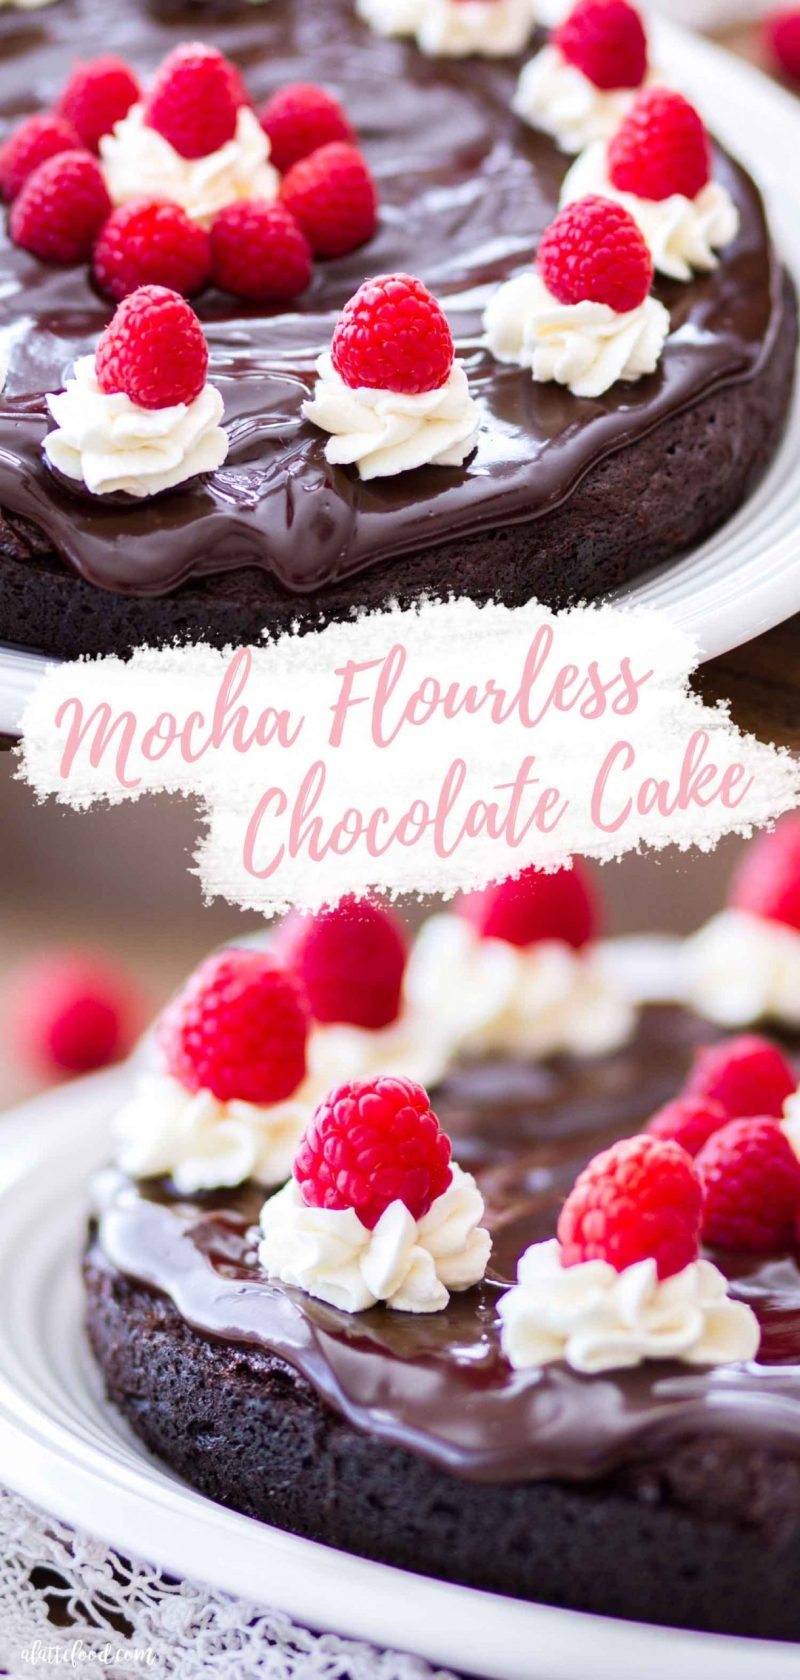 mocha flourless chocolate cake with raspberries and ganache